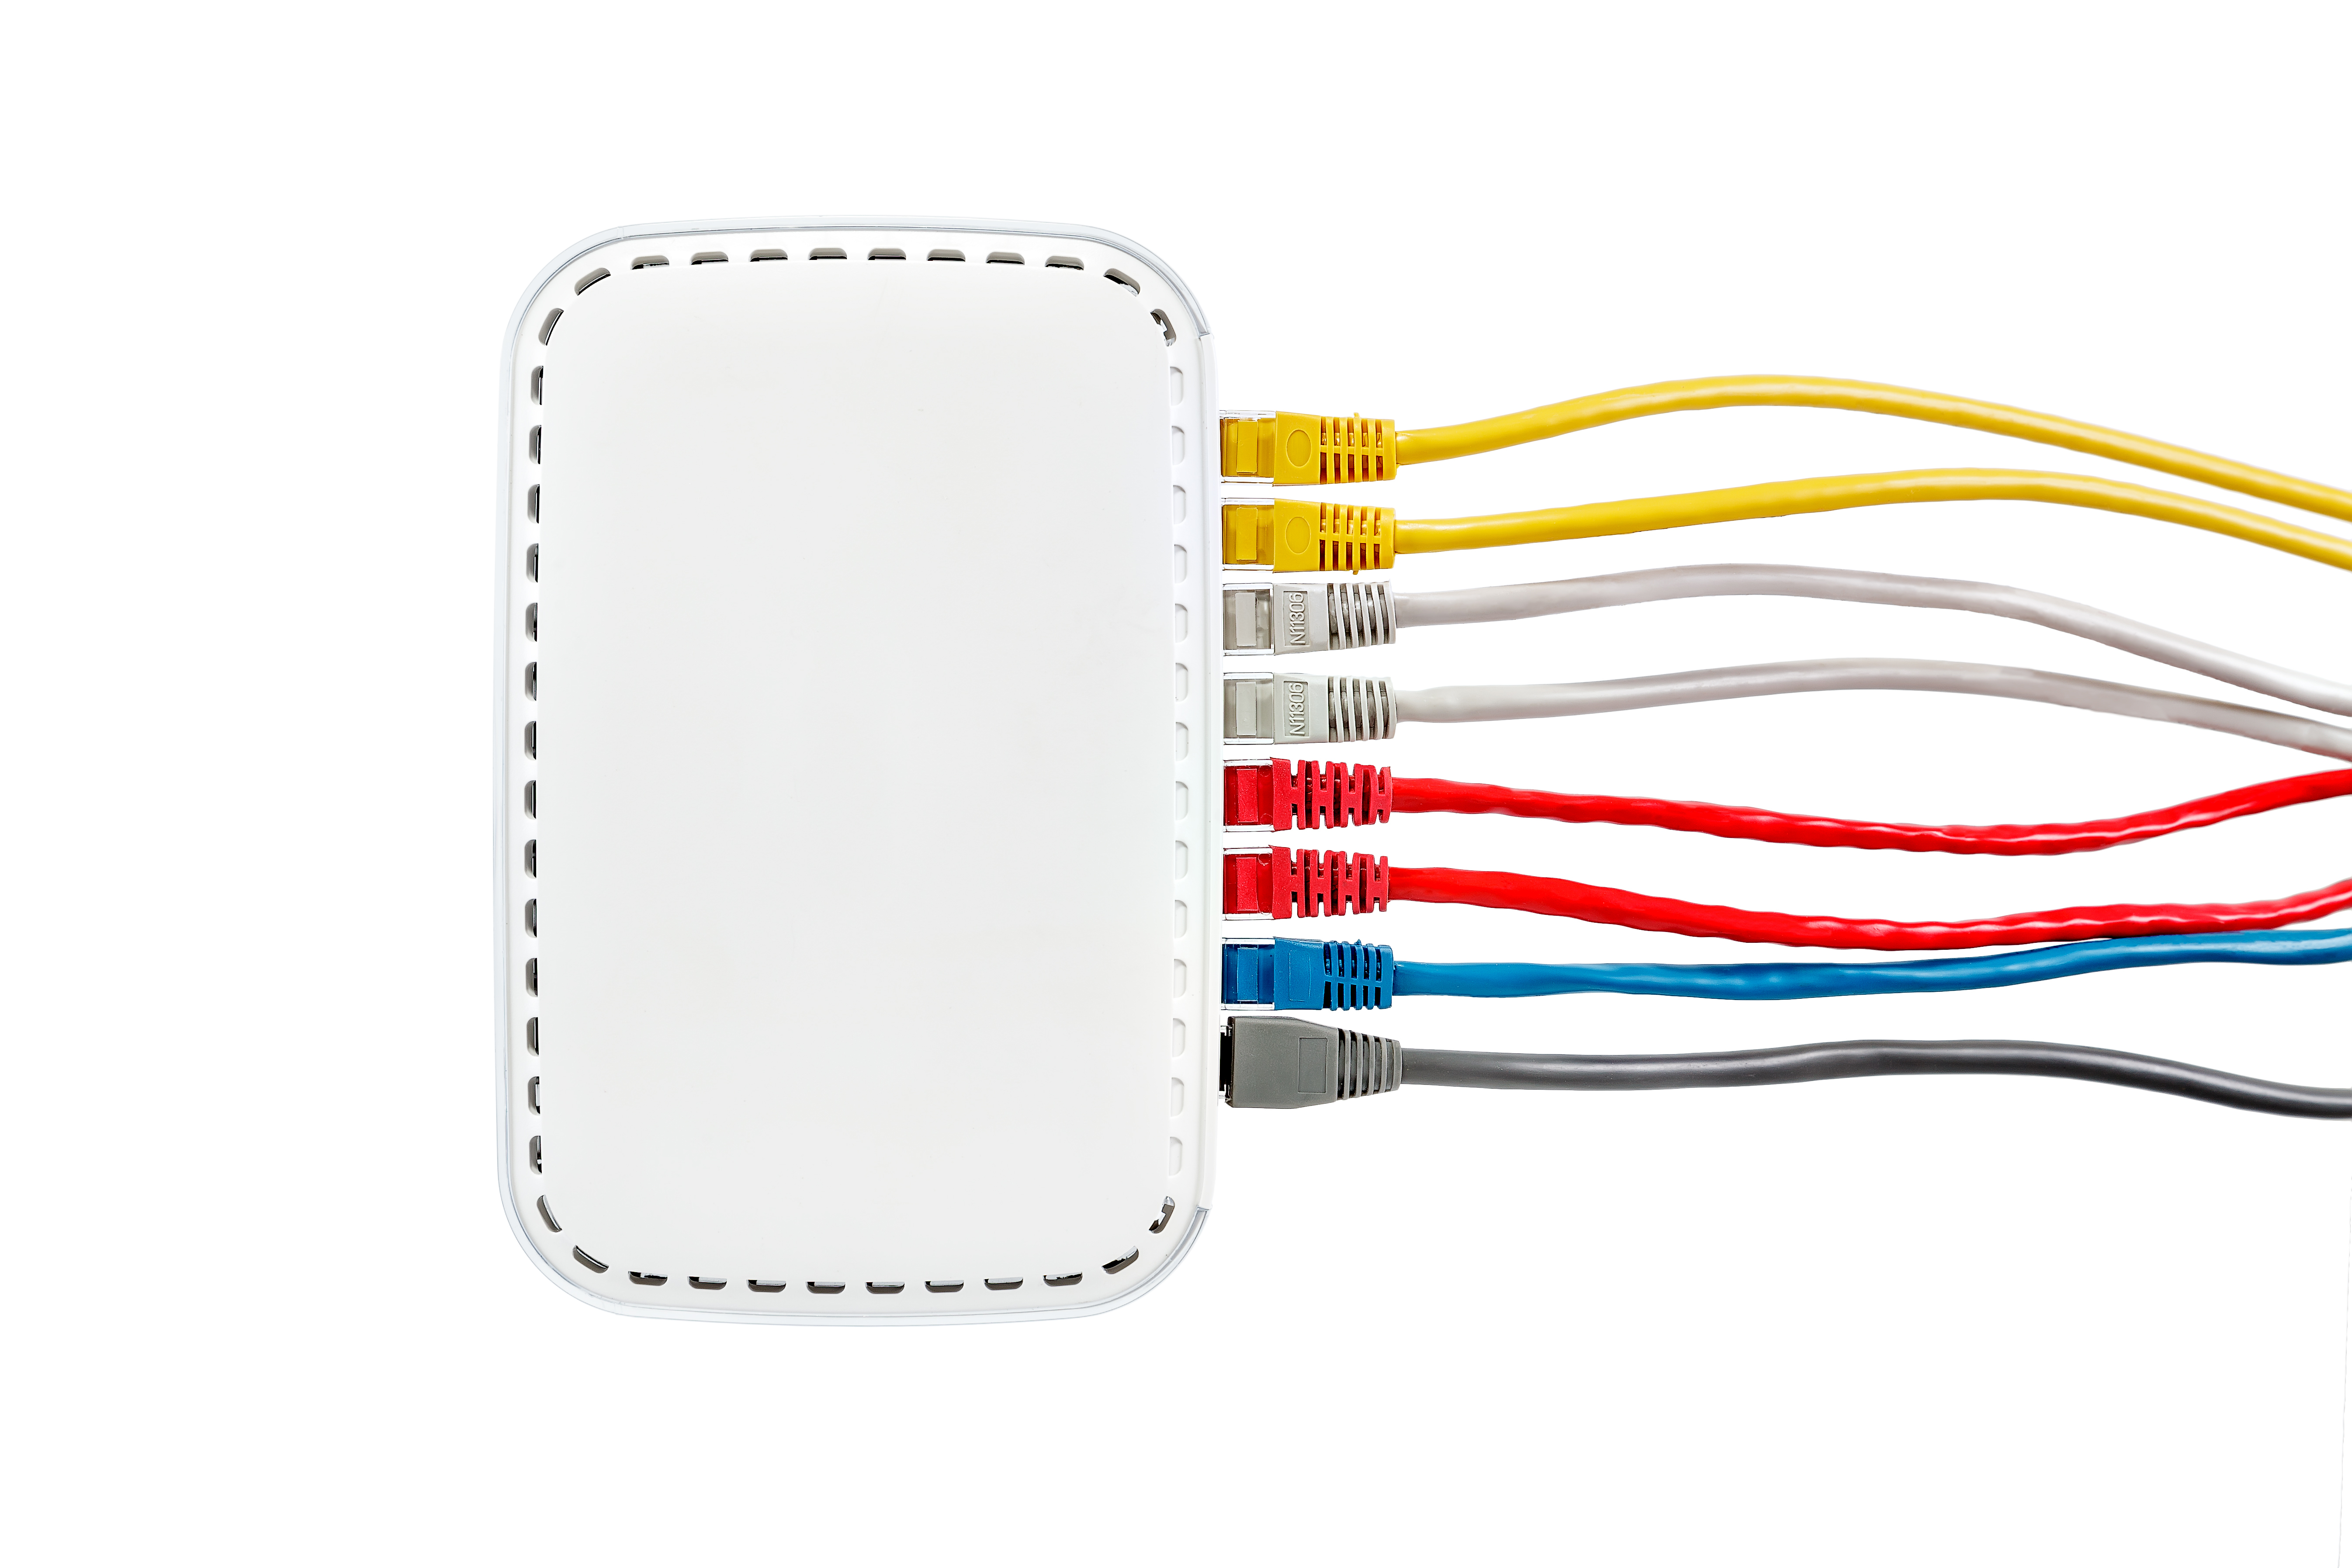 Multicolored network cables connected to router on a white background_Side view_Red, yellow, blue, gray and white Ethernet cables